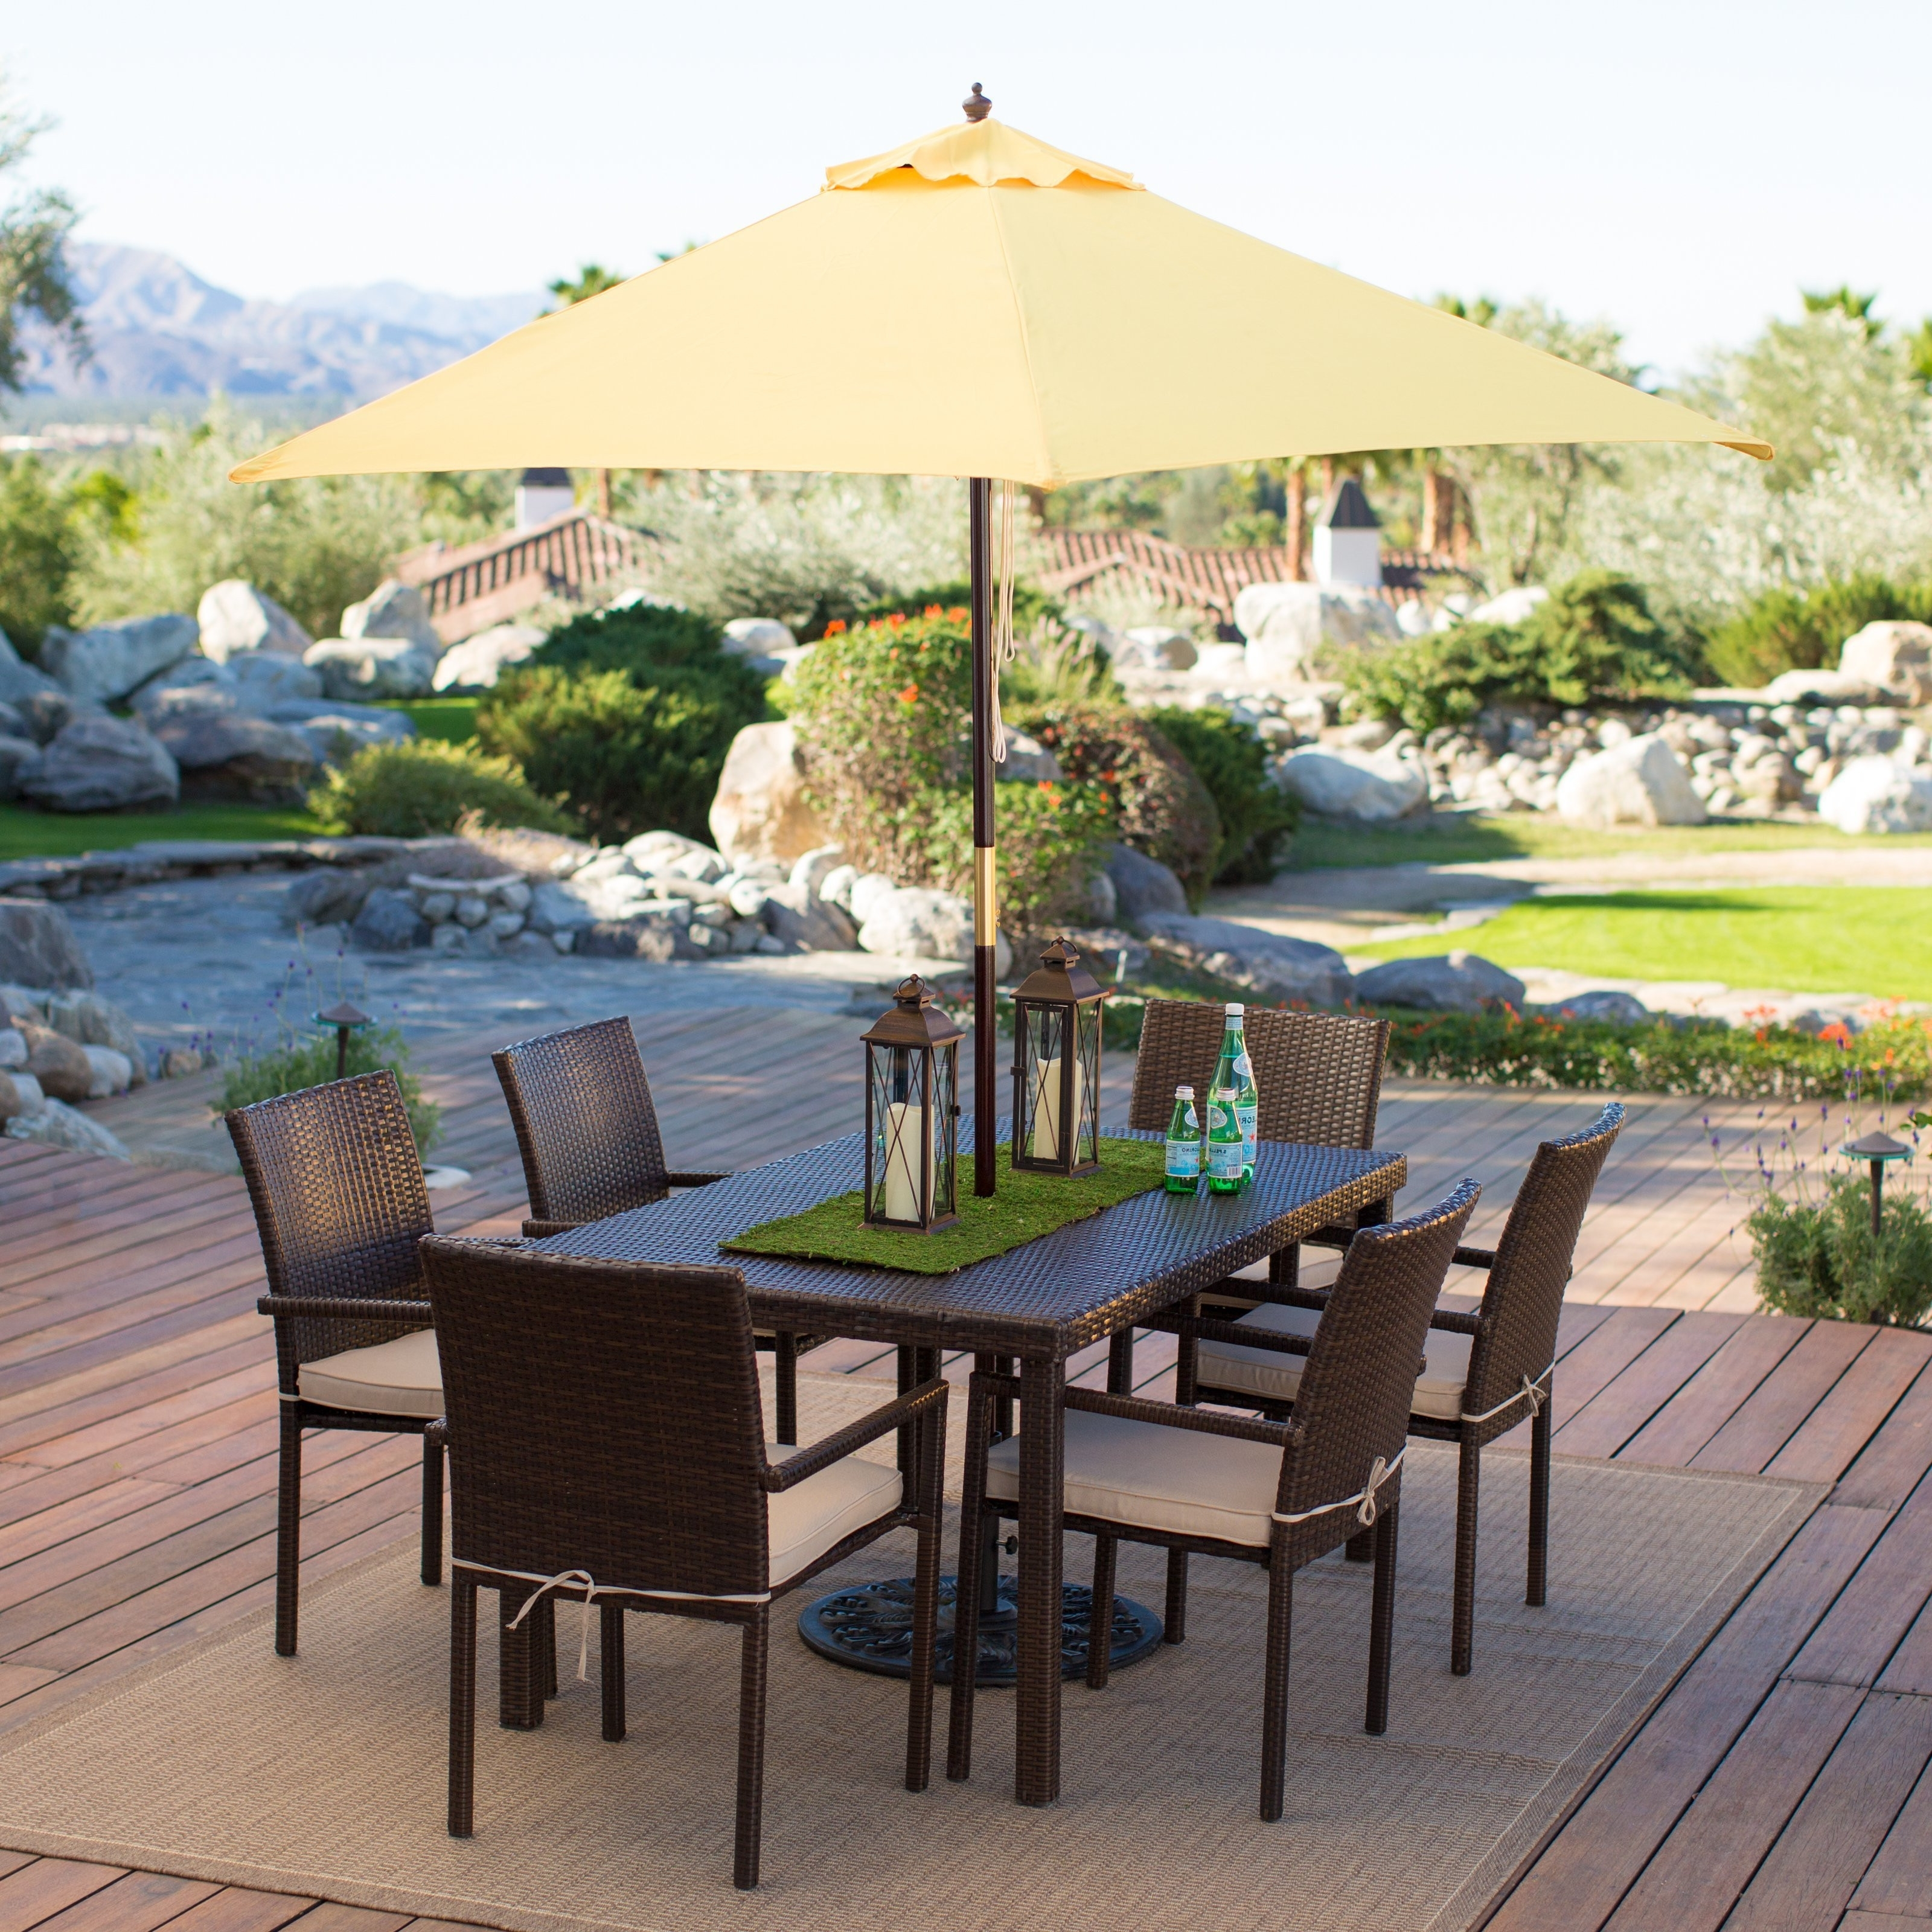 Gorgeous Patio Table Chairs And Umbrella Sets Concept Sunbrella Within Most Popular Sunbrella Patio Table Umbrellas (View 19 of 20)